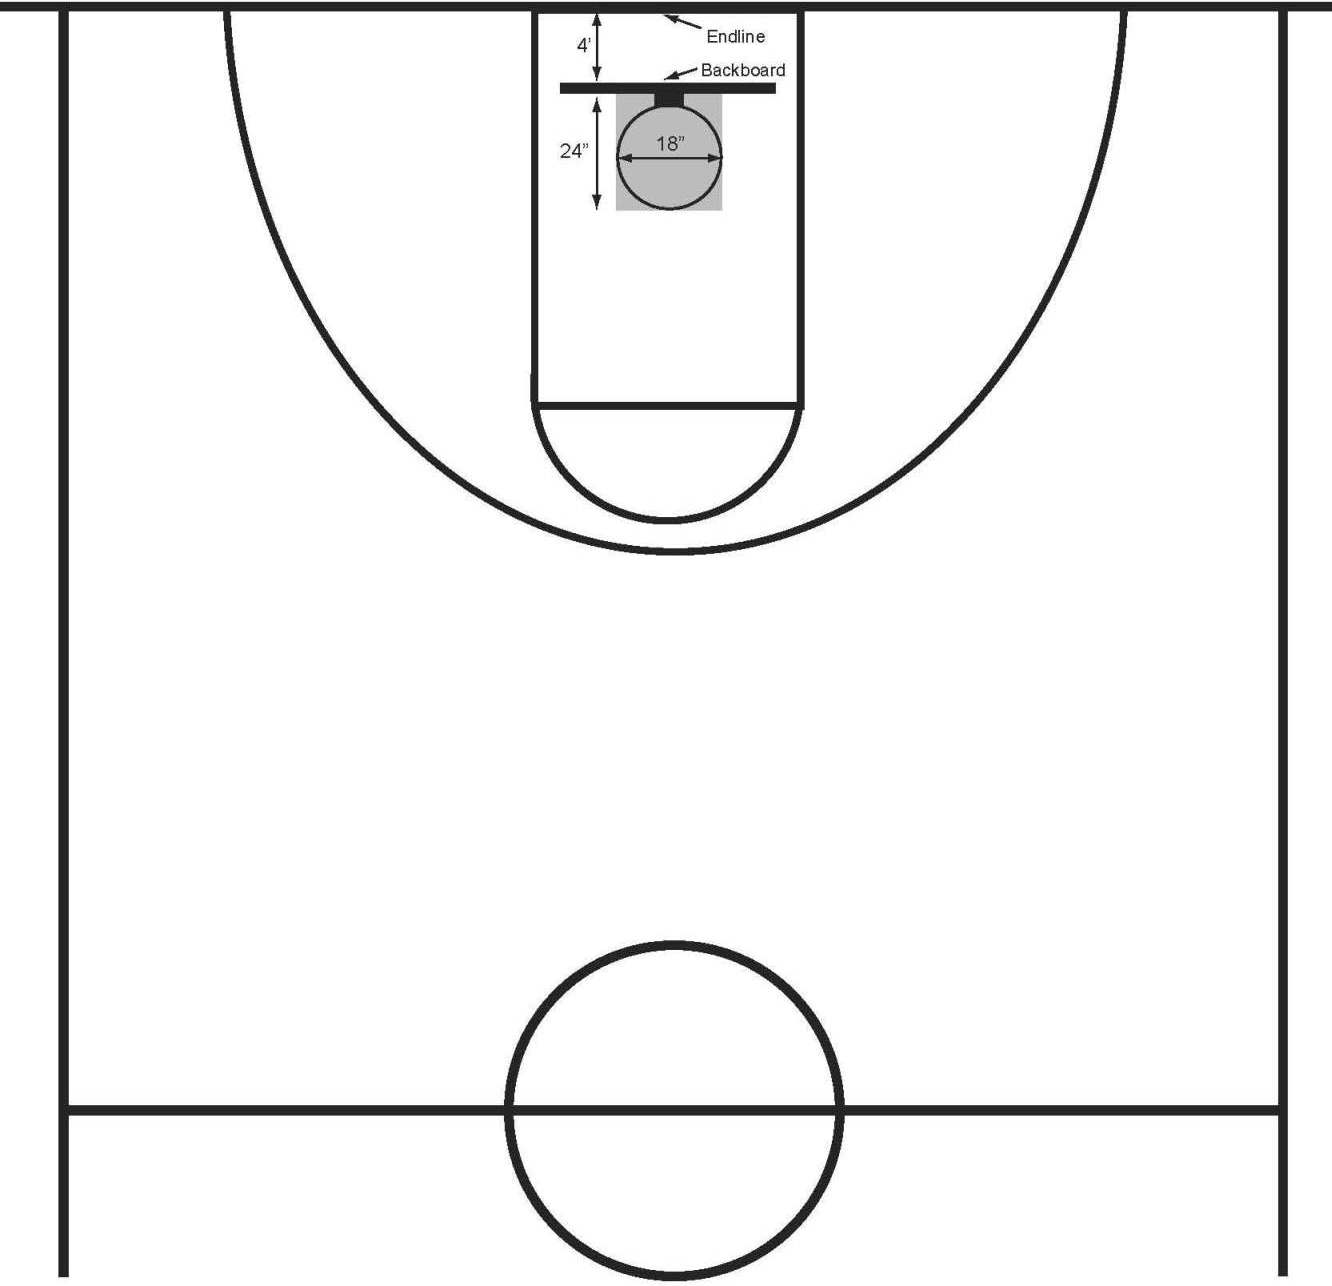 Free Basketball Court Clipart Download Free Clip Art